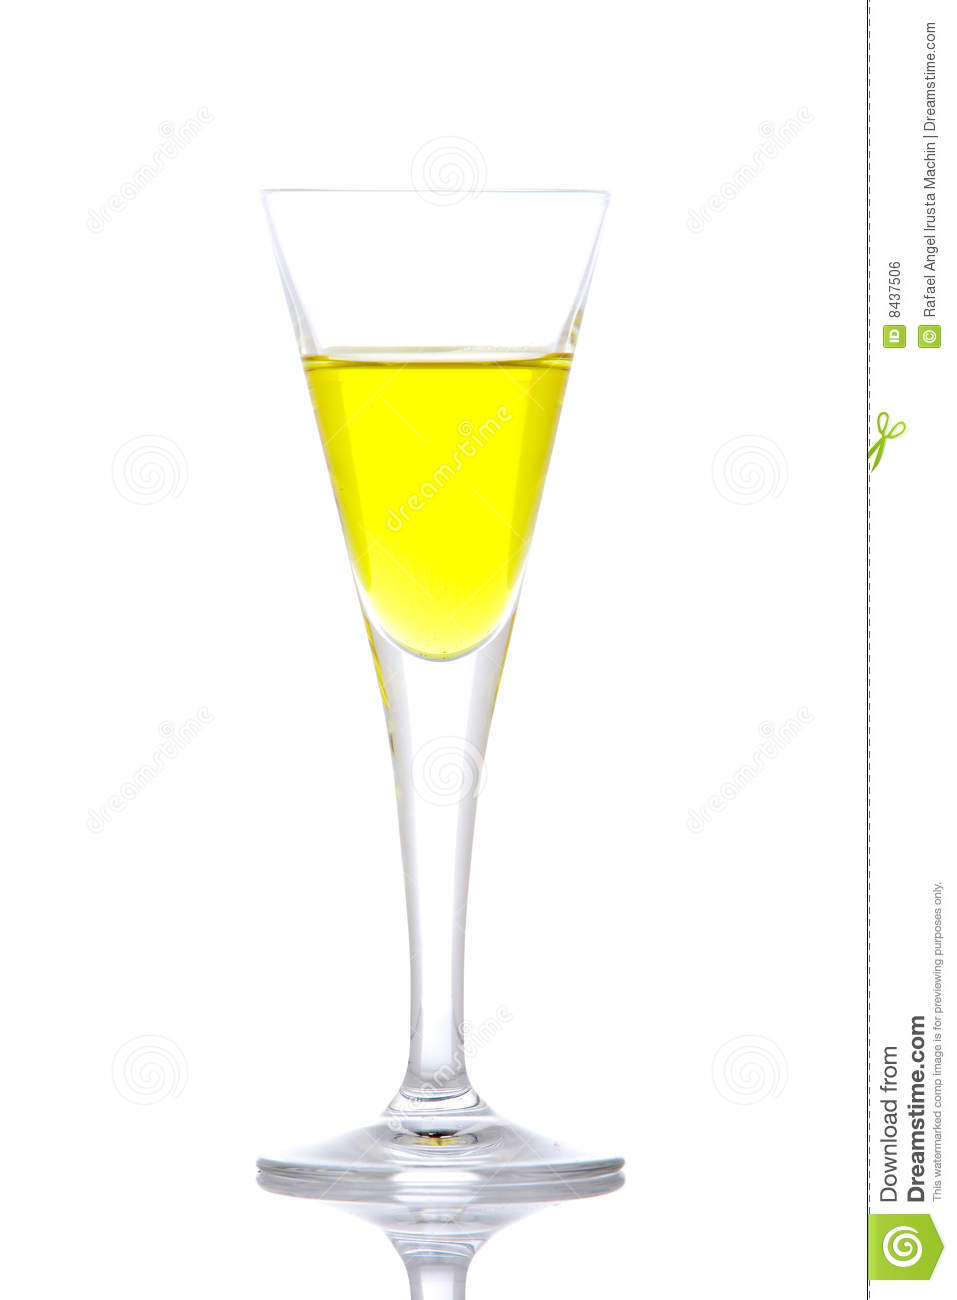 Glass of yellow paradise cocktail